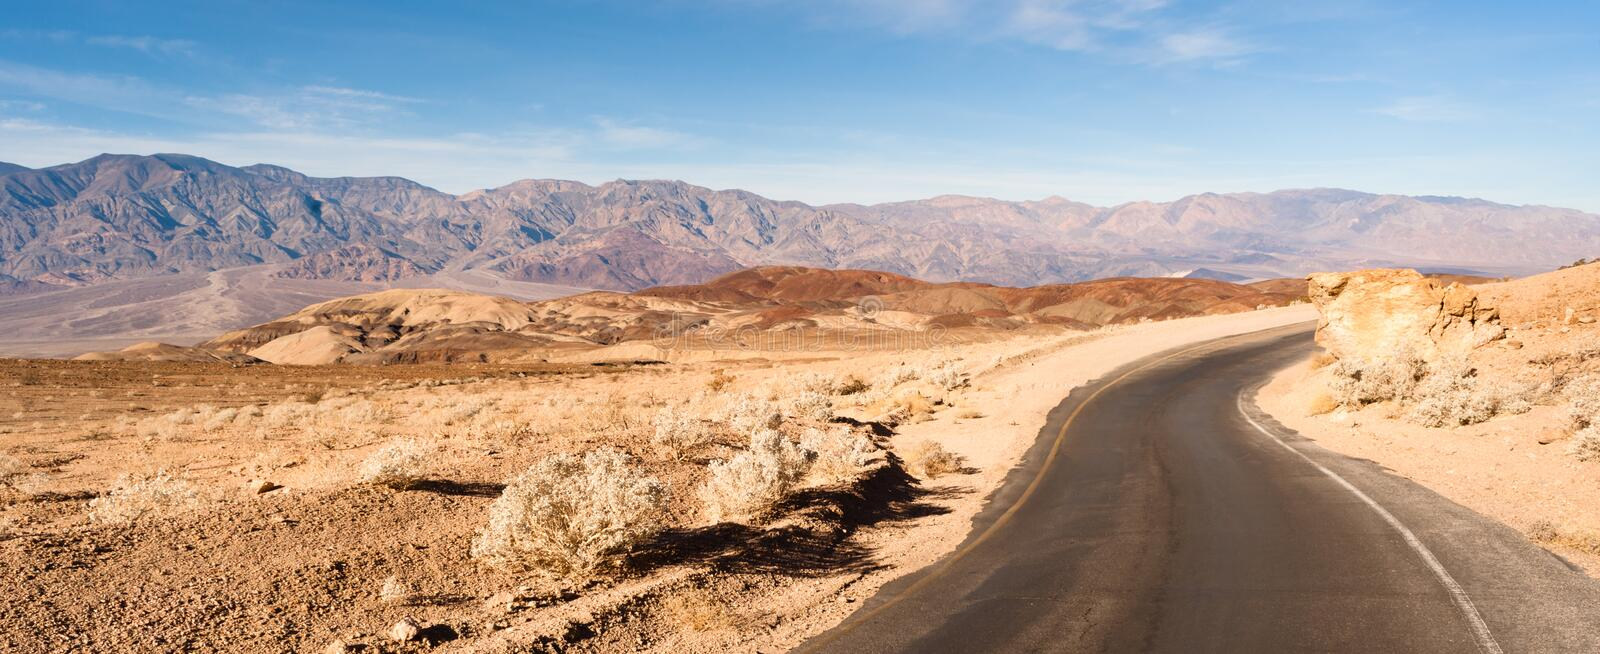 Panoramic View Open Road Death Valley National Park Highway stock photos